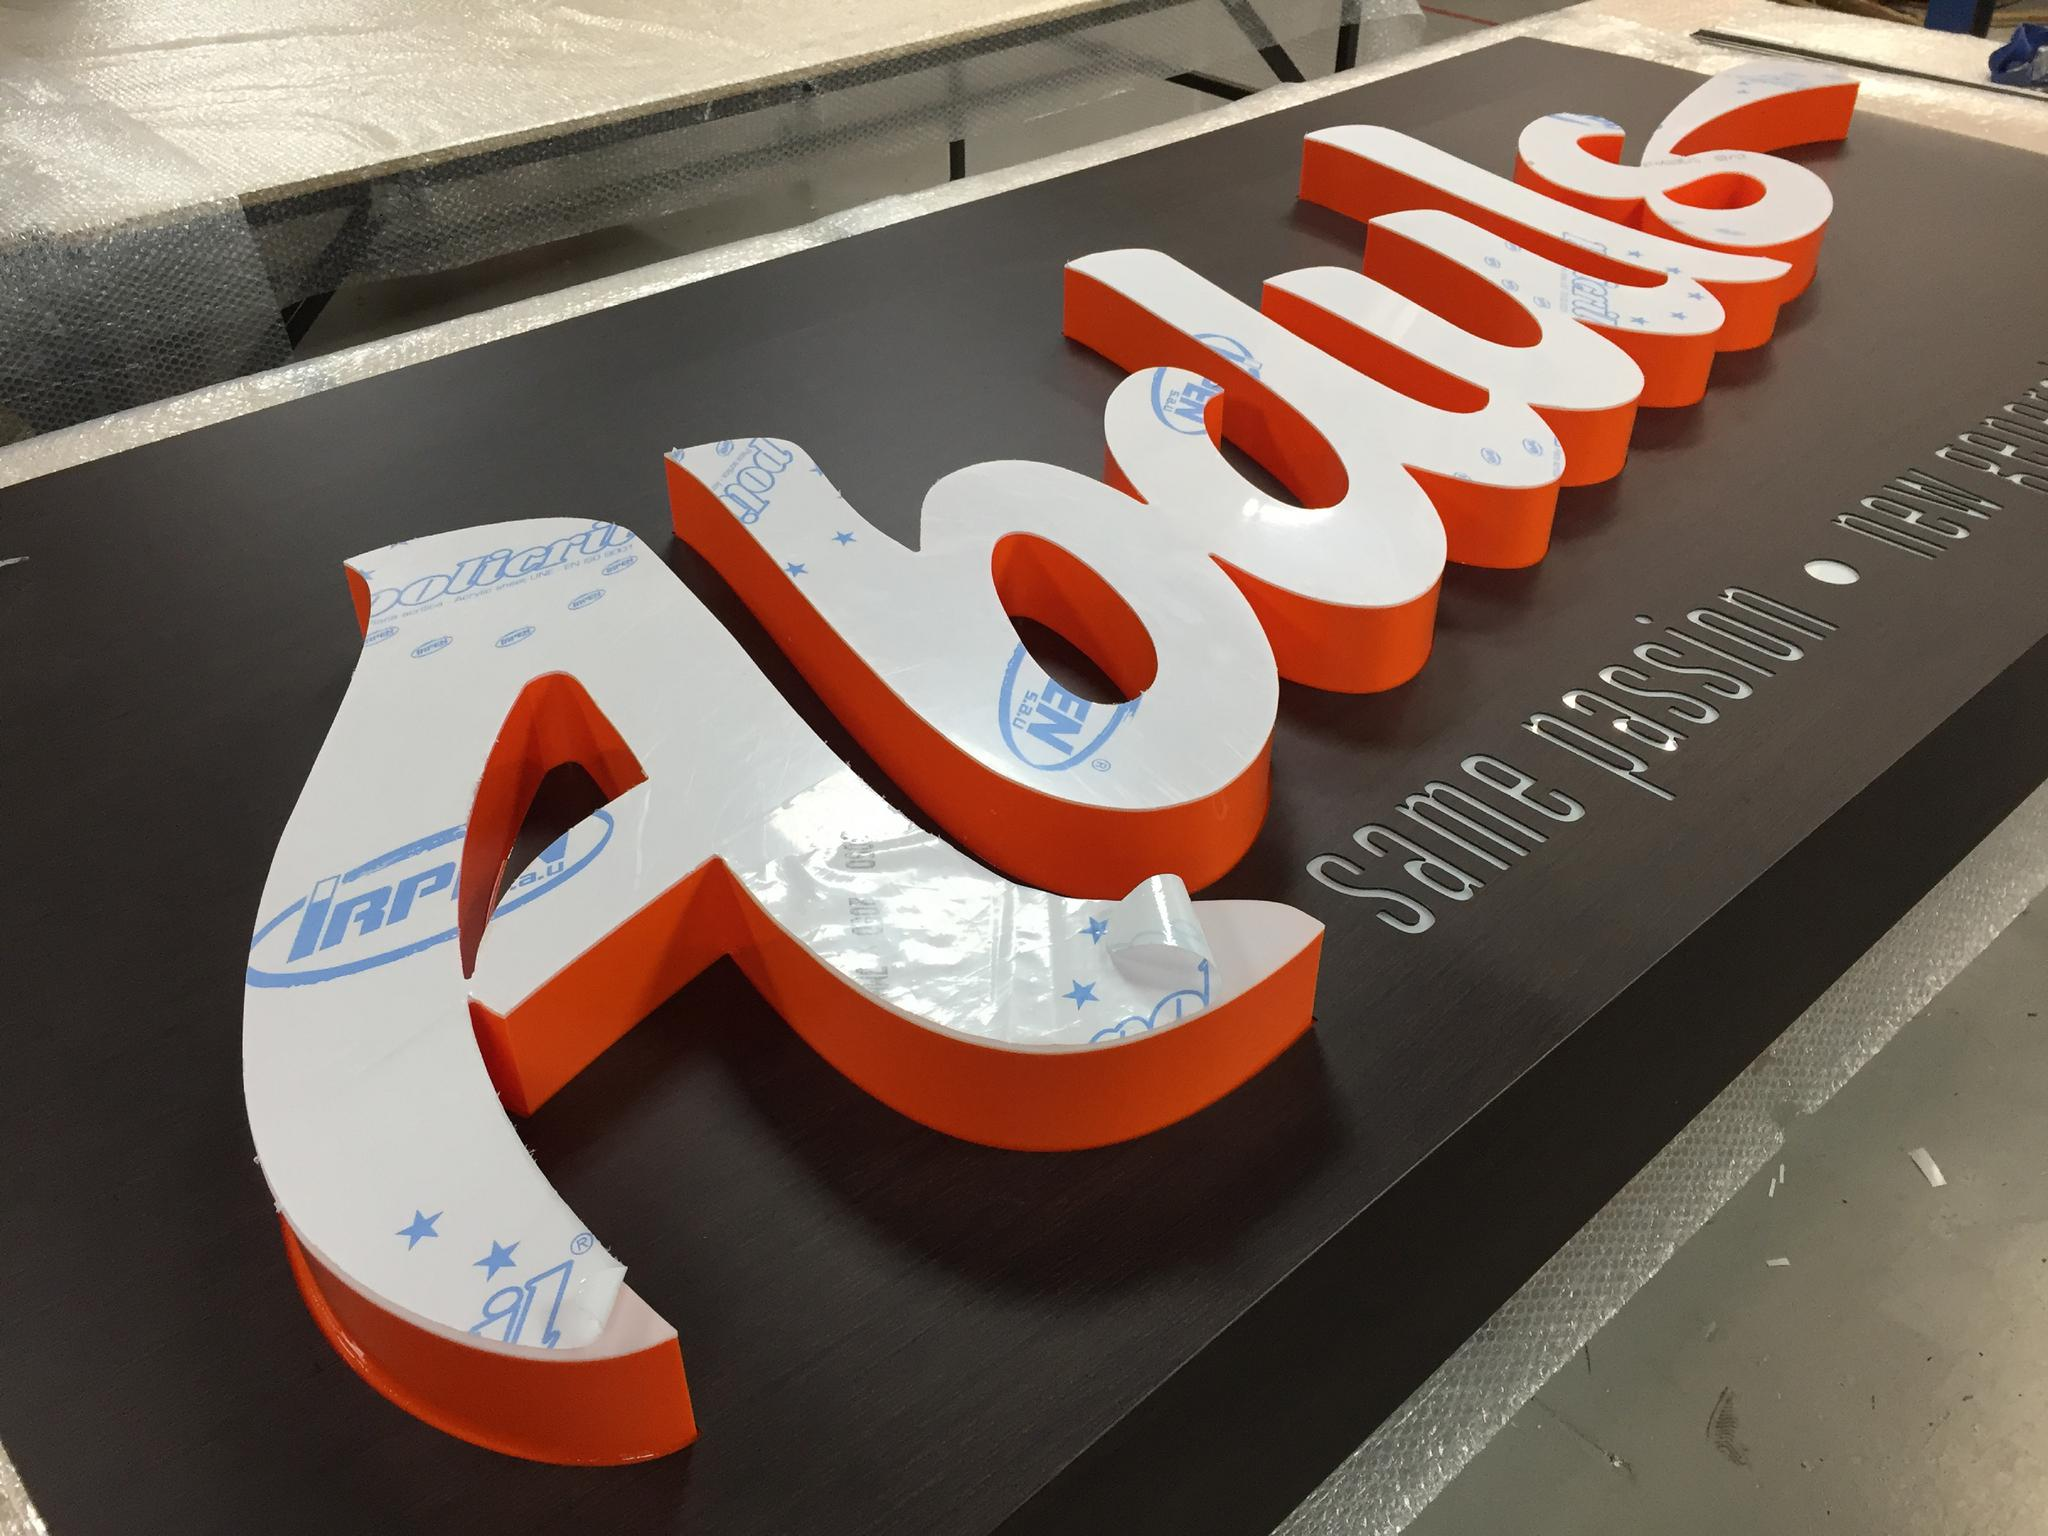 What do signmakers need from creatives?